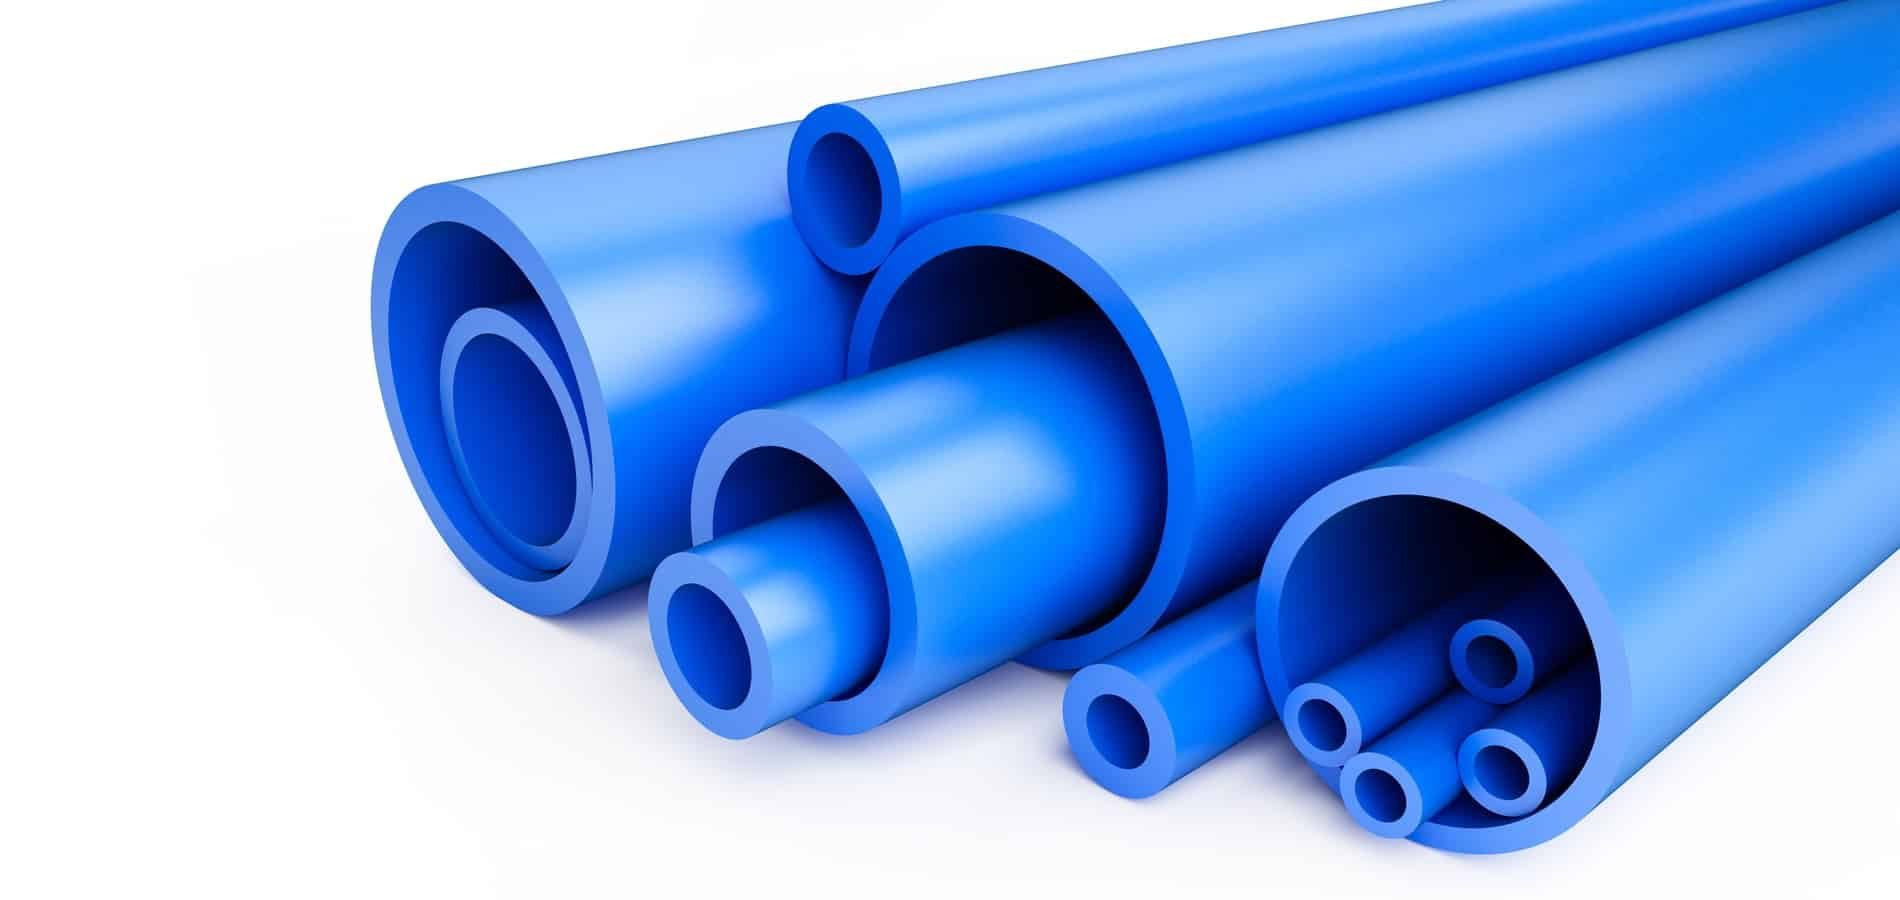 Ecopuro Thermoplastics building projects pipes